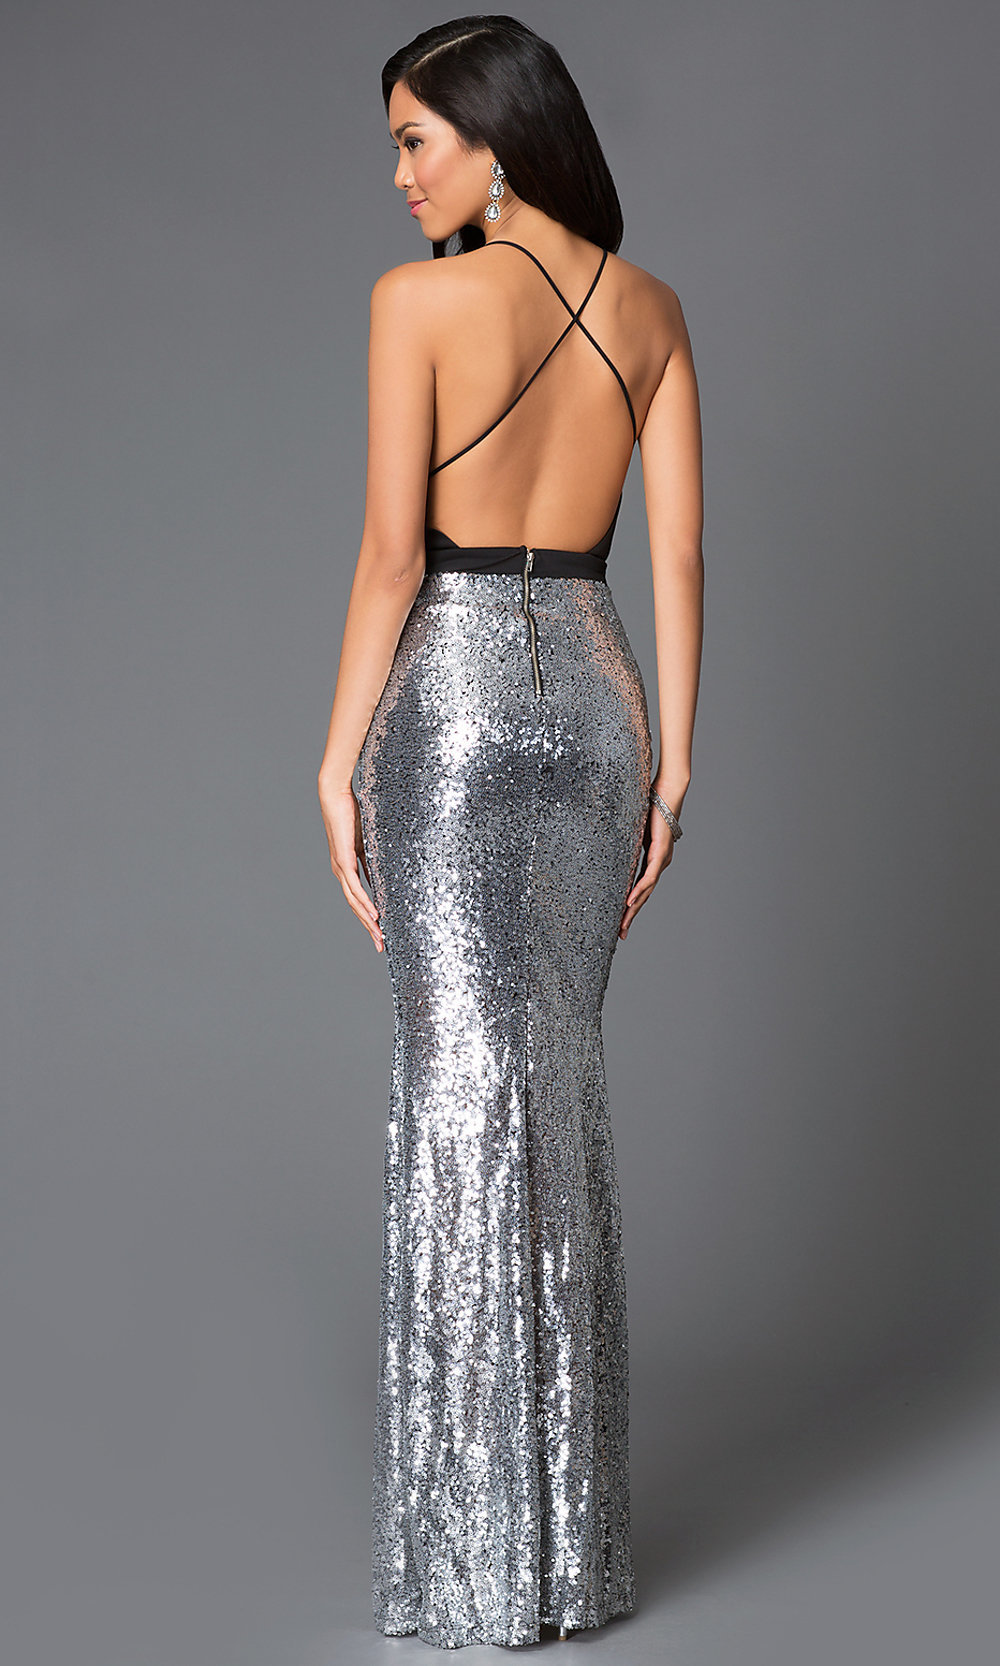 Sequin open back dress pictures